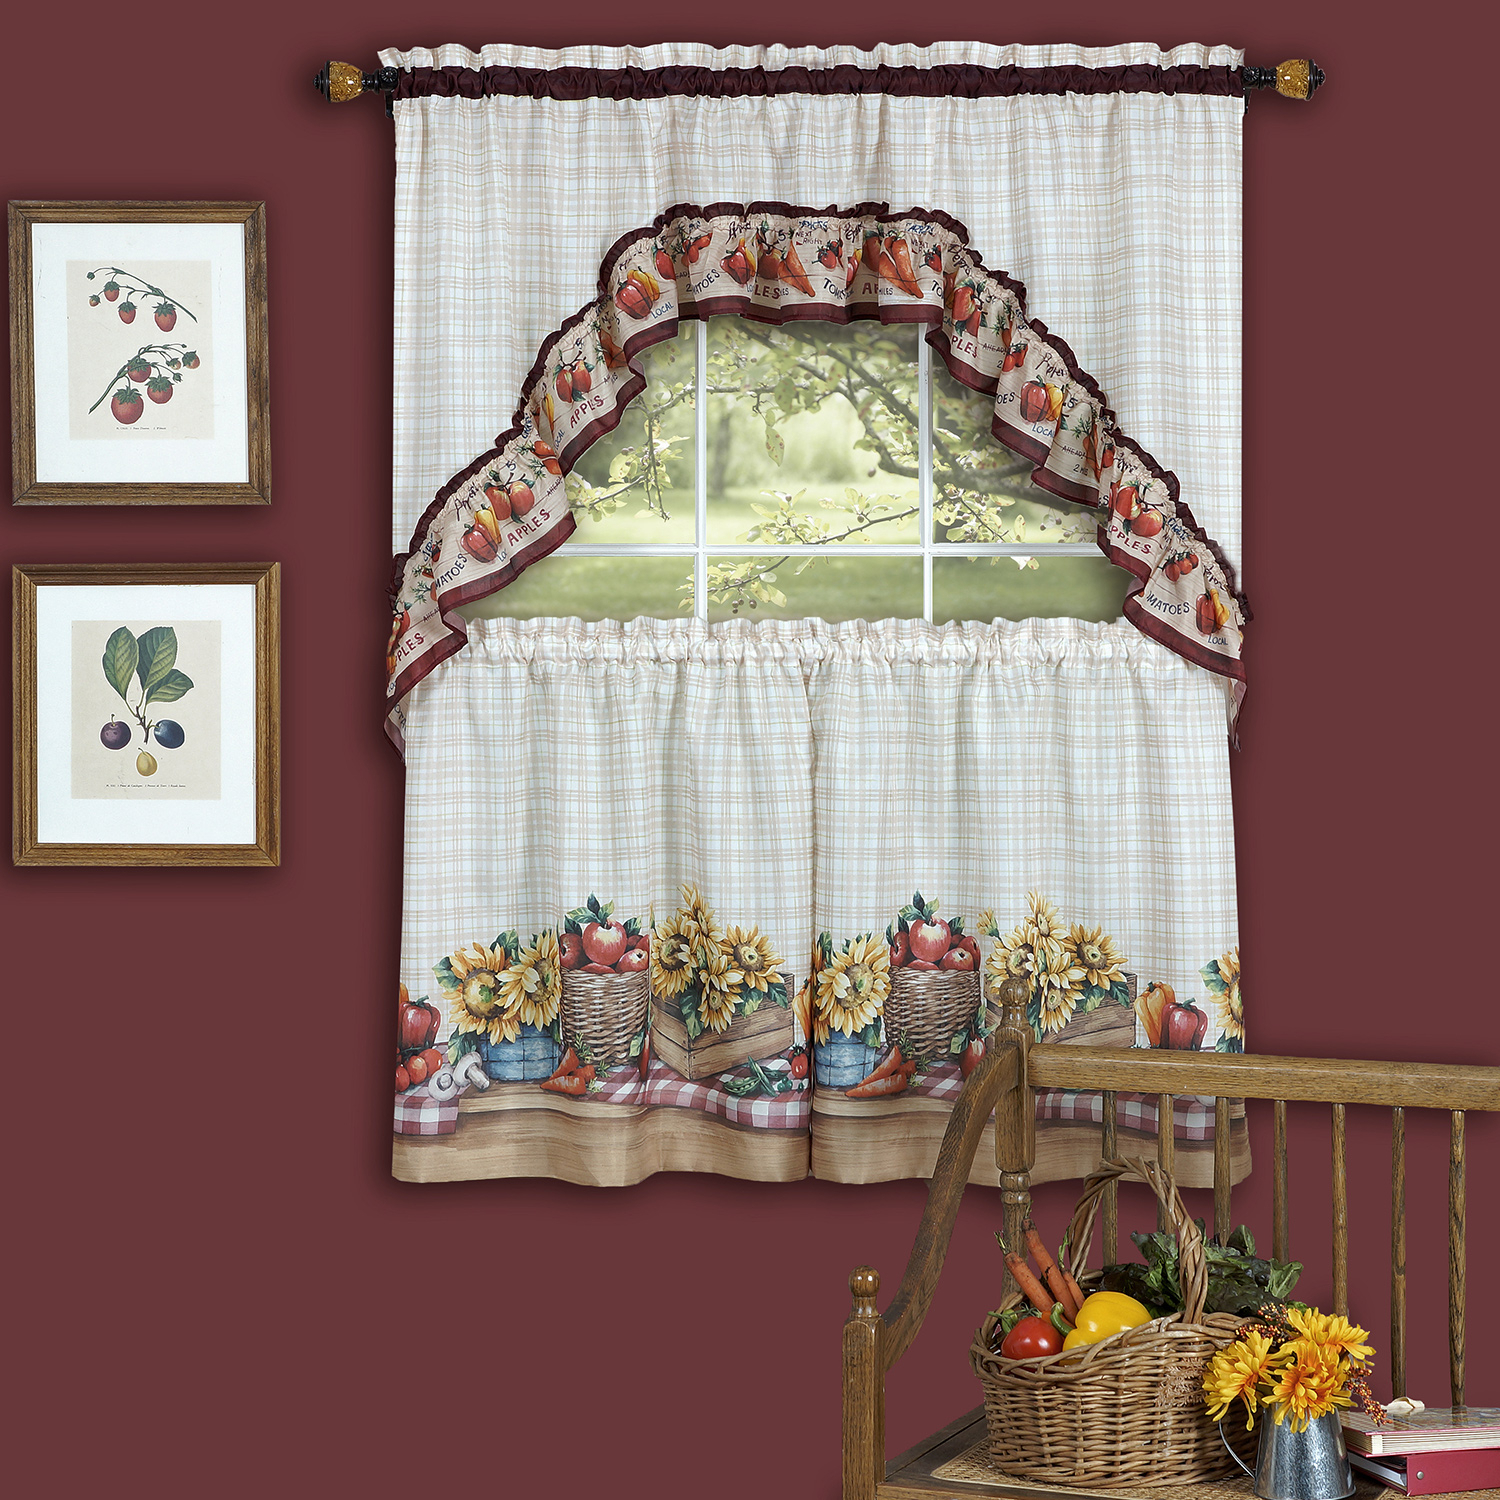 """Details About Farmer's Market Fruit Flowers Kitchen Curtain 36"""" Tier Pair & 30"""" Swag Set Intended For Cotton Blend Ivy Floral Tier Curtain And Swag Sets (View 8 of 20)"""